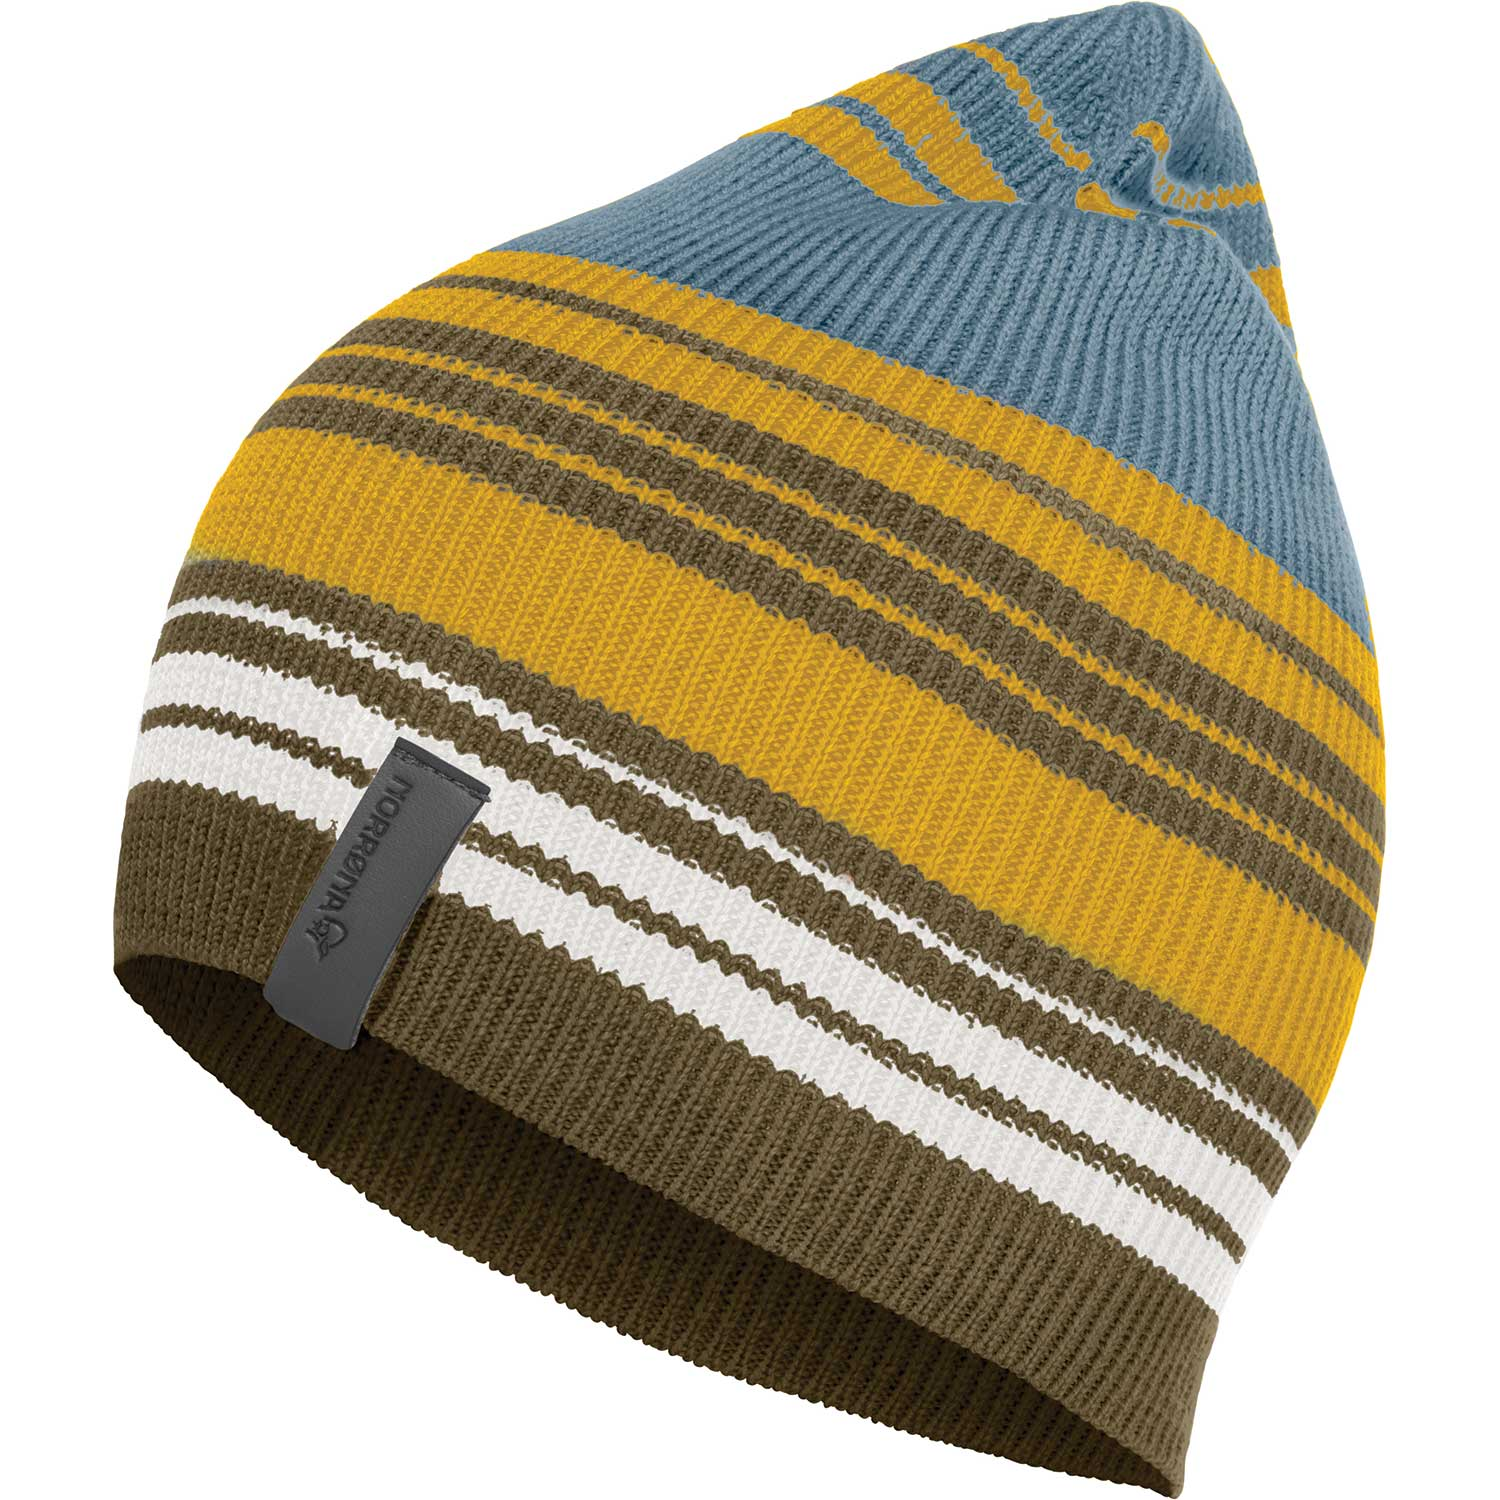 /29 striped light weight Beanie